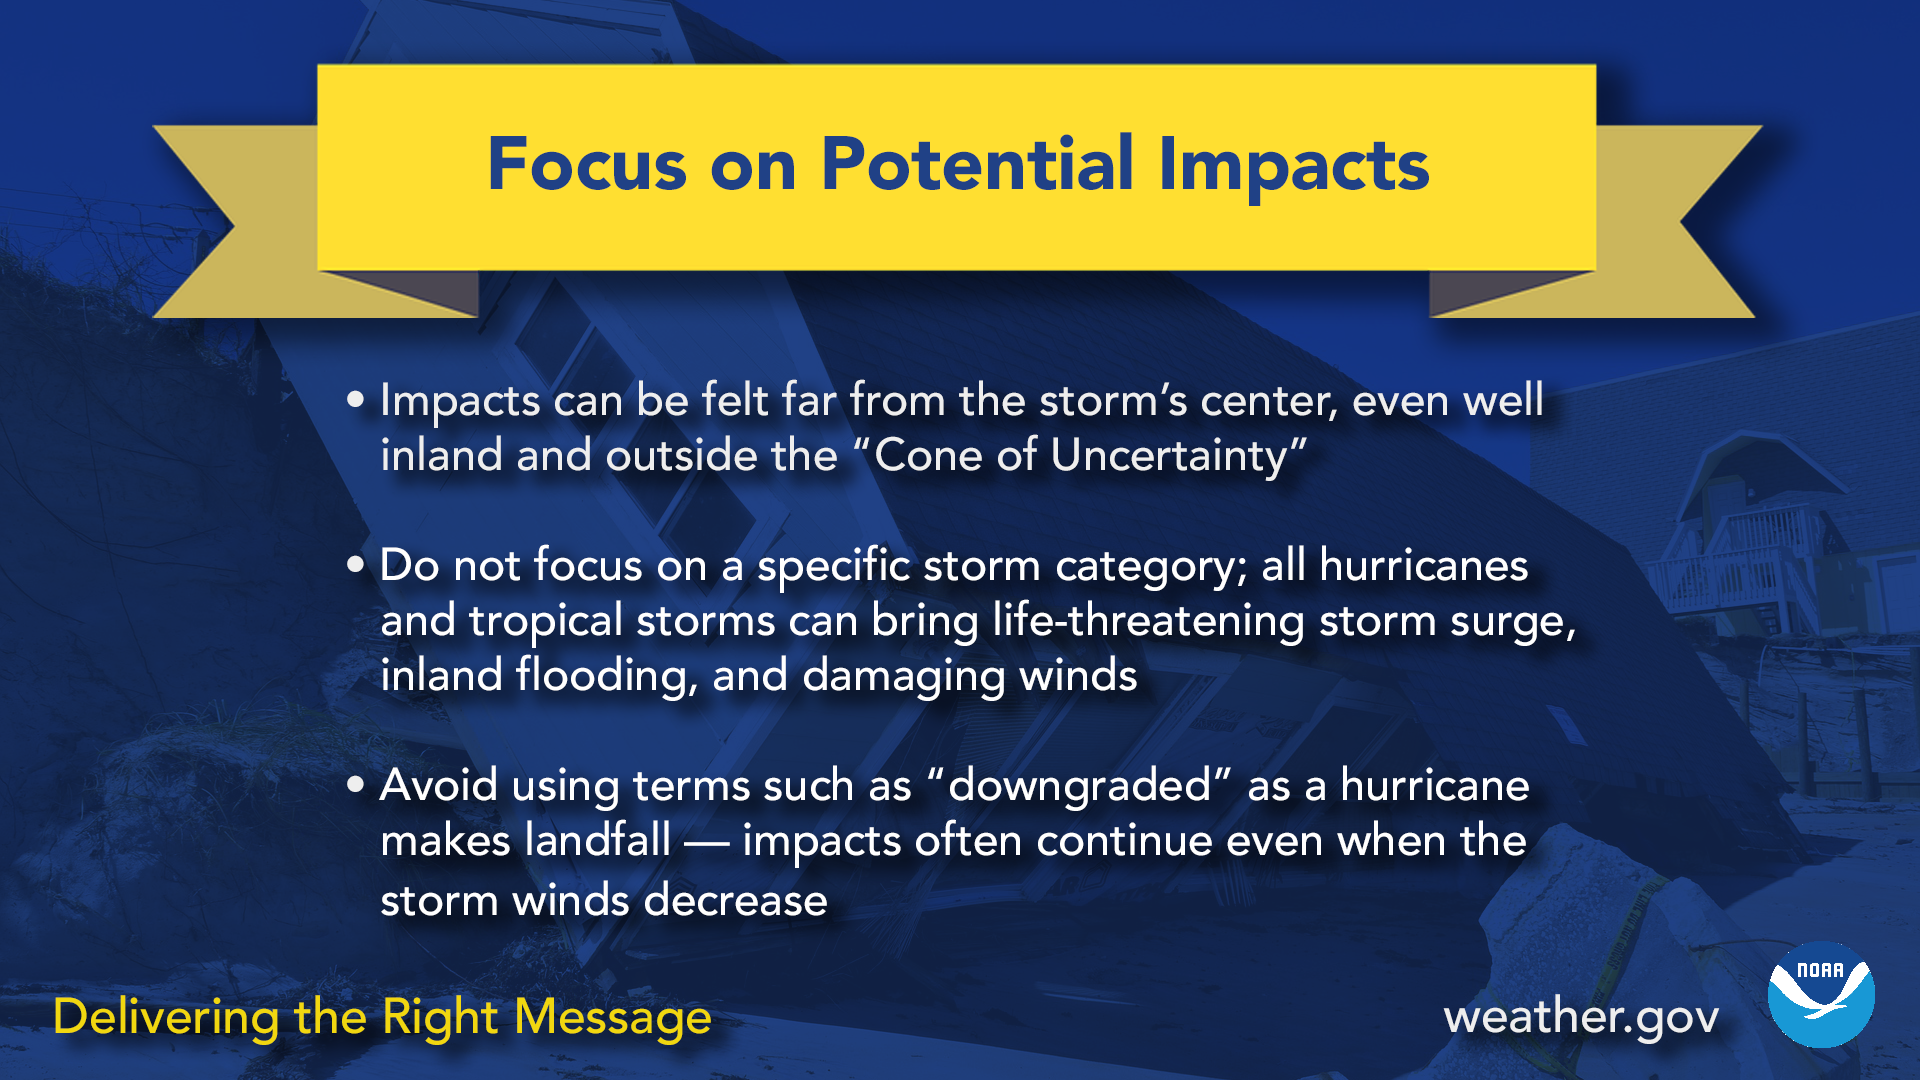 Focus on potential impacts. Impacts can be felt far from the storm's center, even well inland and outside the 'cone of uncertainty'. Do not focus on a specific storm category; all hurricanes and tropical storms can bring life-threatening storm surge, inland flooding, and damaging winds. Avoid using terms such as 'downgraded' as a hurricane makes landfall - impacts often continue even when the storm winds decrease.